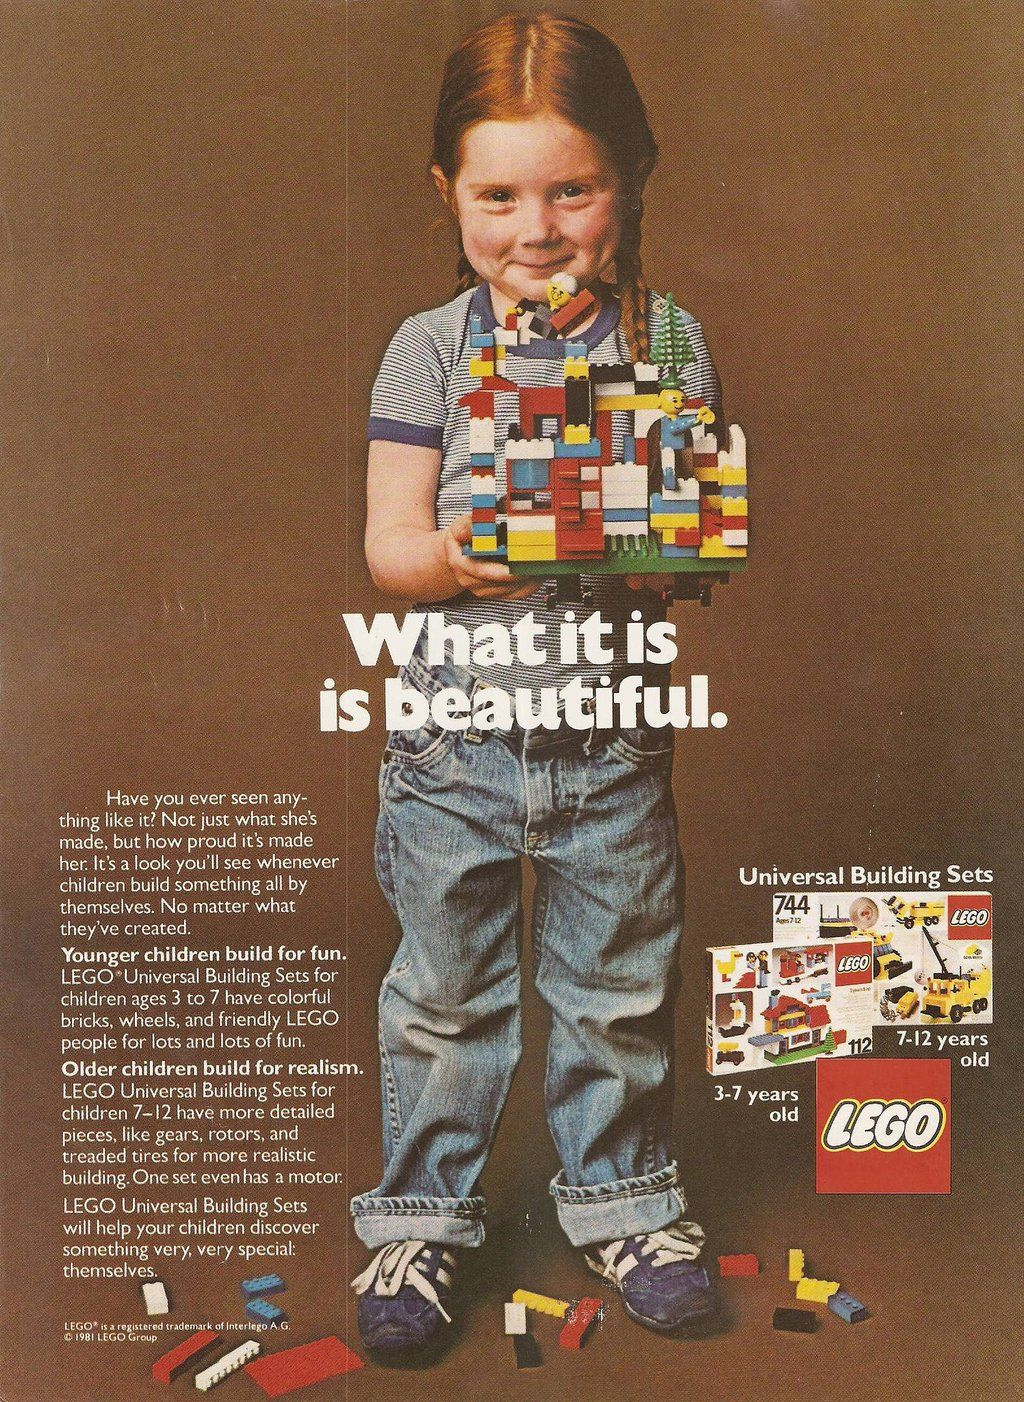 """History In Pictures on Twitter: """"Let's take some time to appreciate Lego. https://t.co/QpowtA747K"""""""